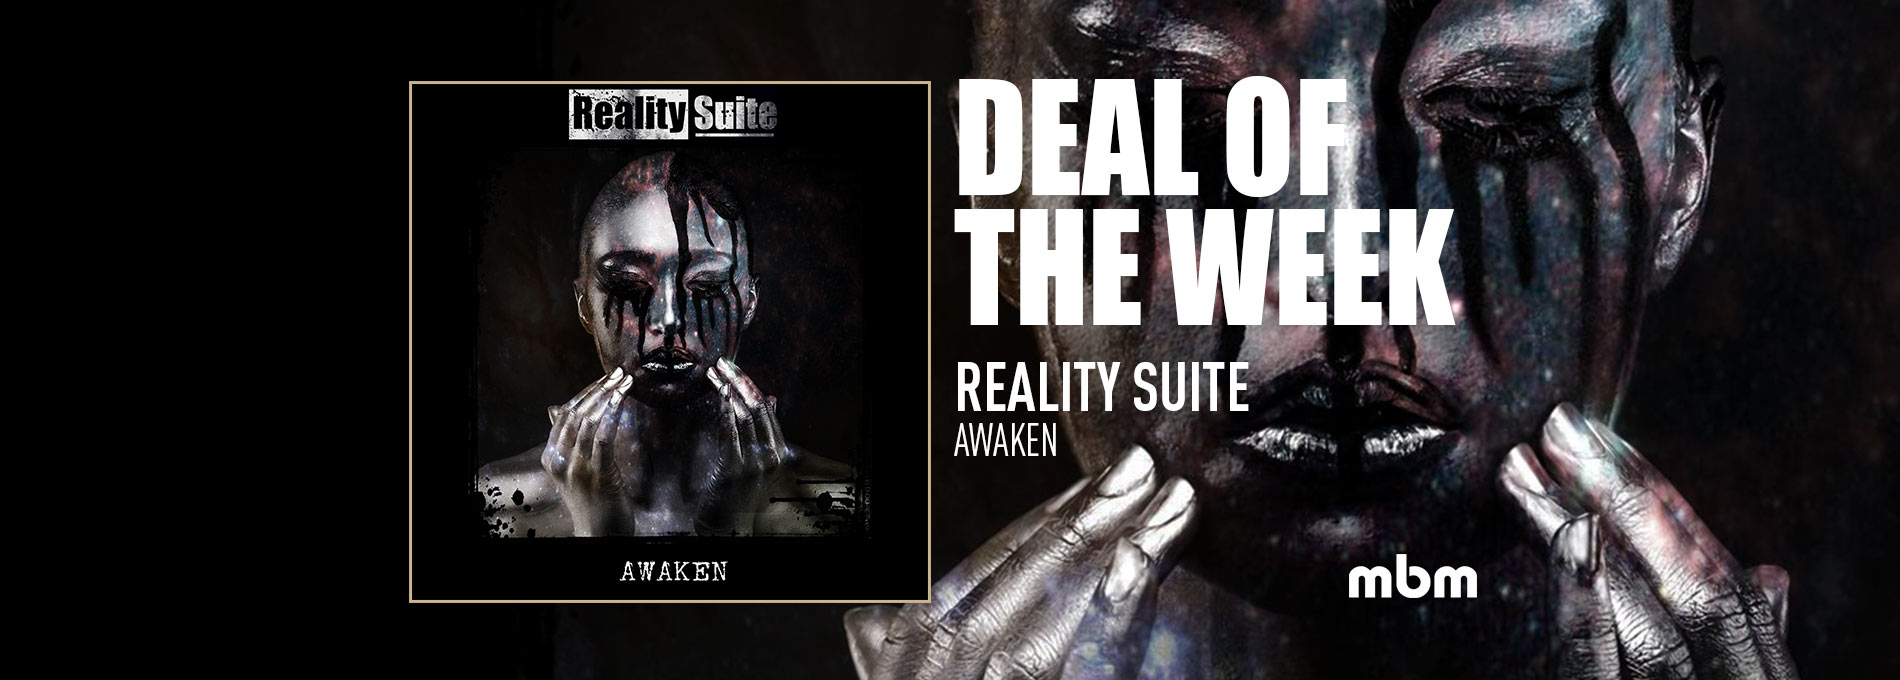 Deal Of The Week: REALITY SUITE - Awaken